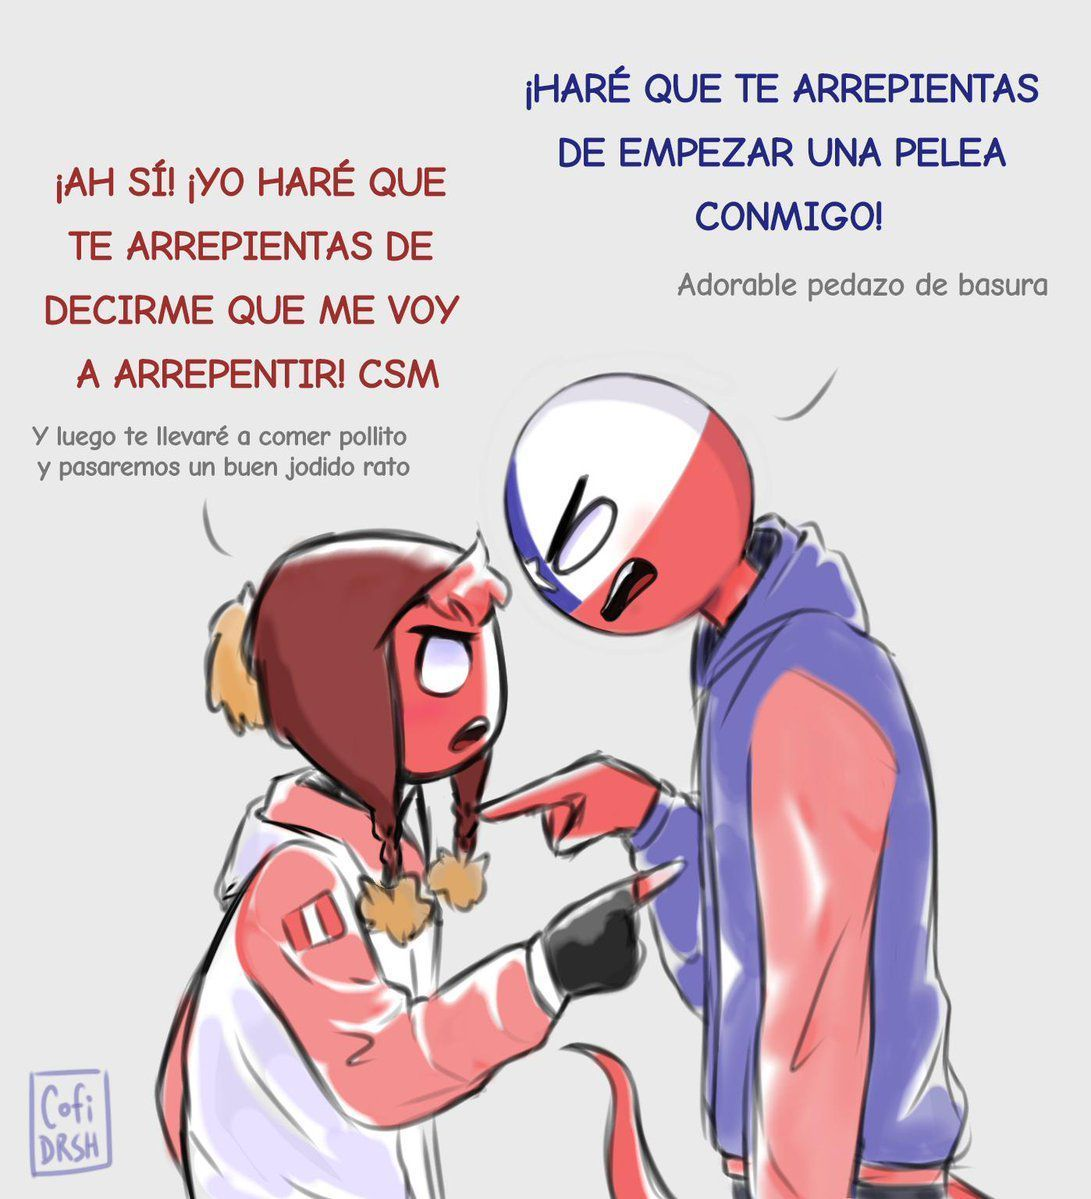 Pin de ུ ۪۪ ⿻ꔪ⃢ ⃢🌈 ུ. en Countryhumans Perú Mundo comic